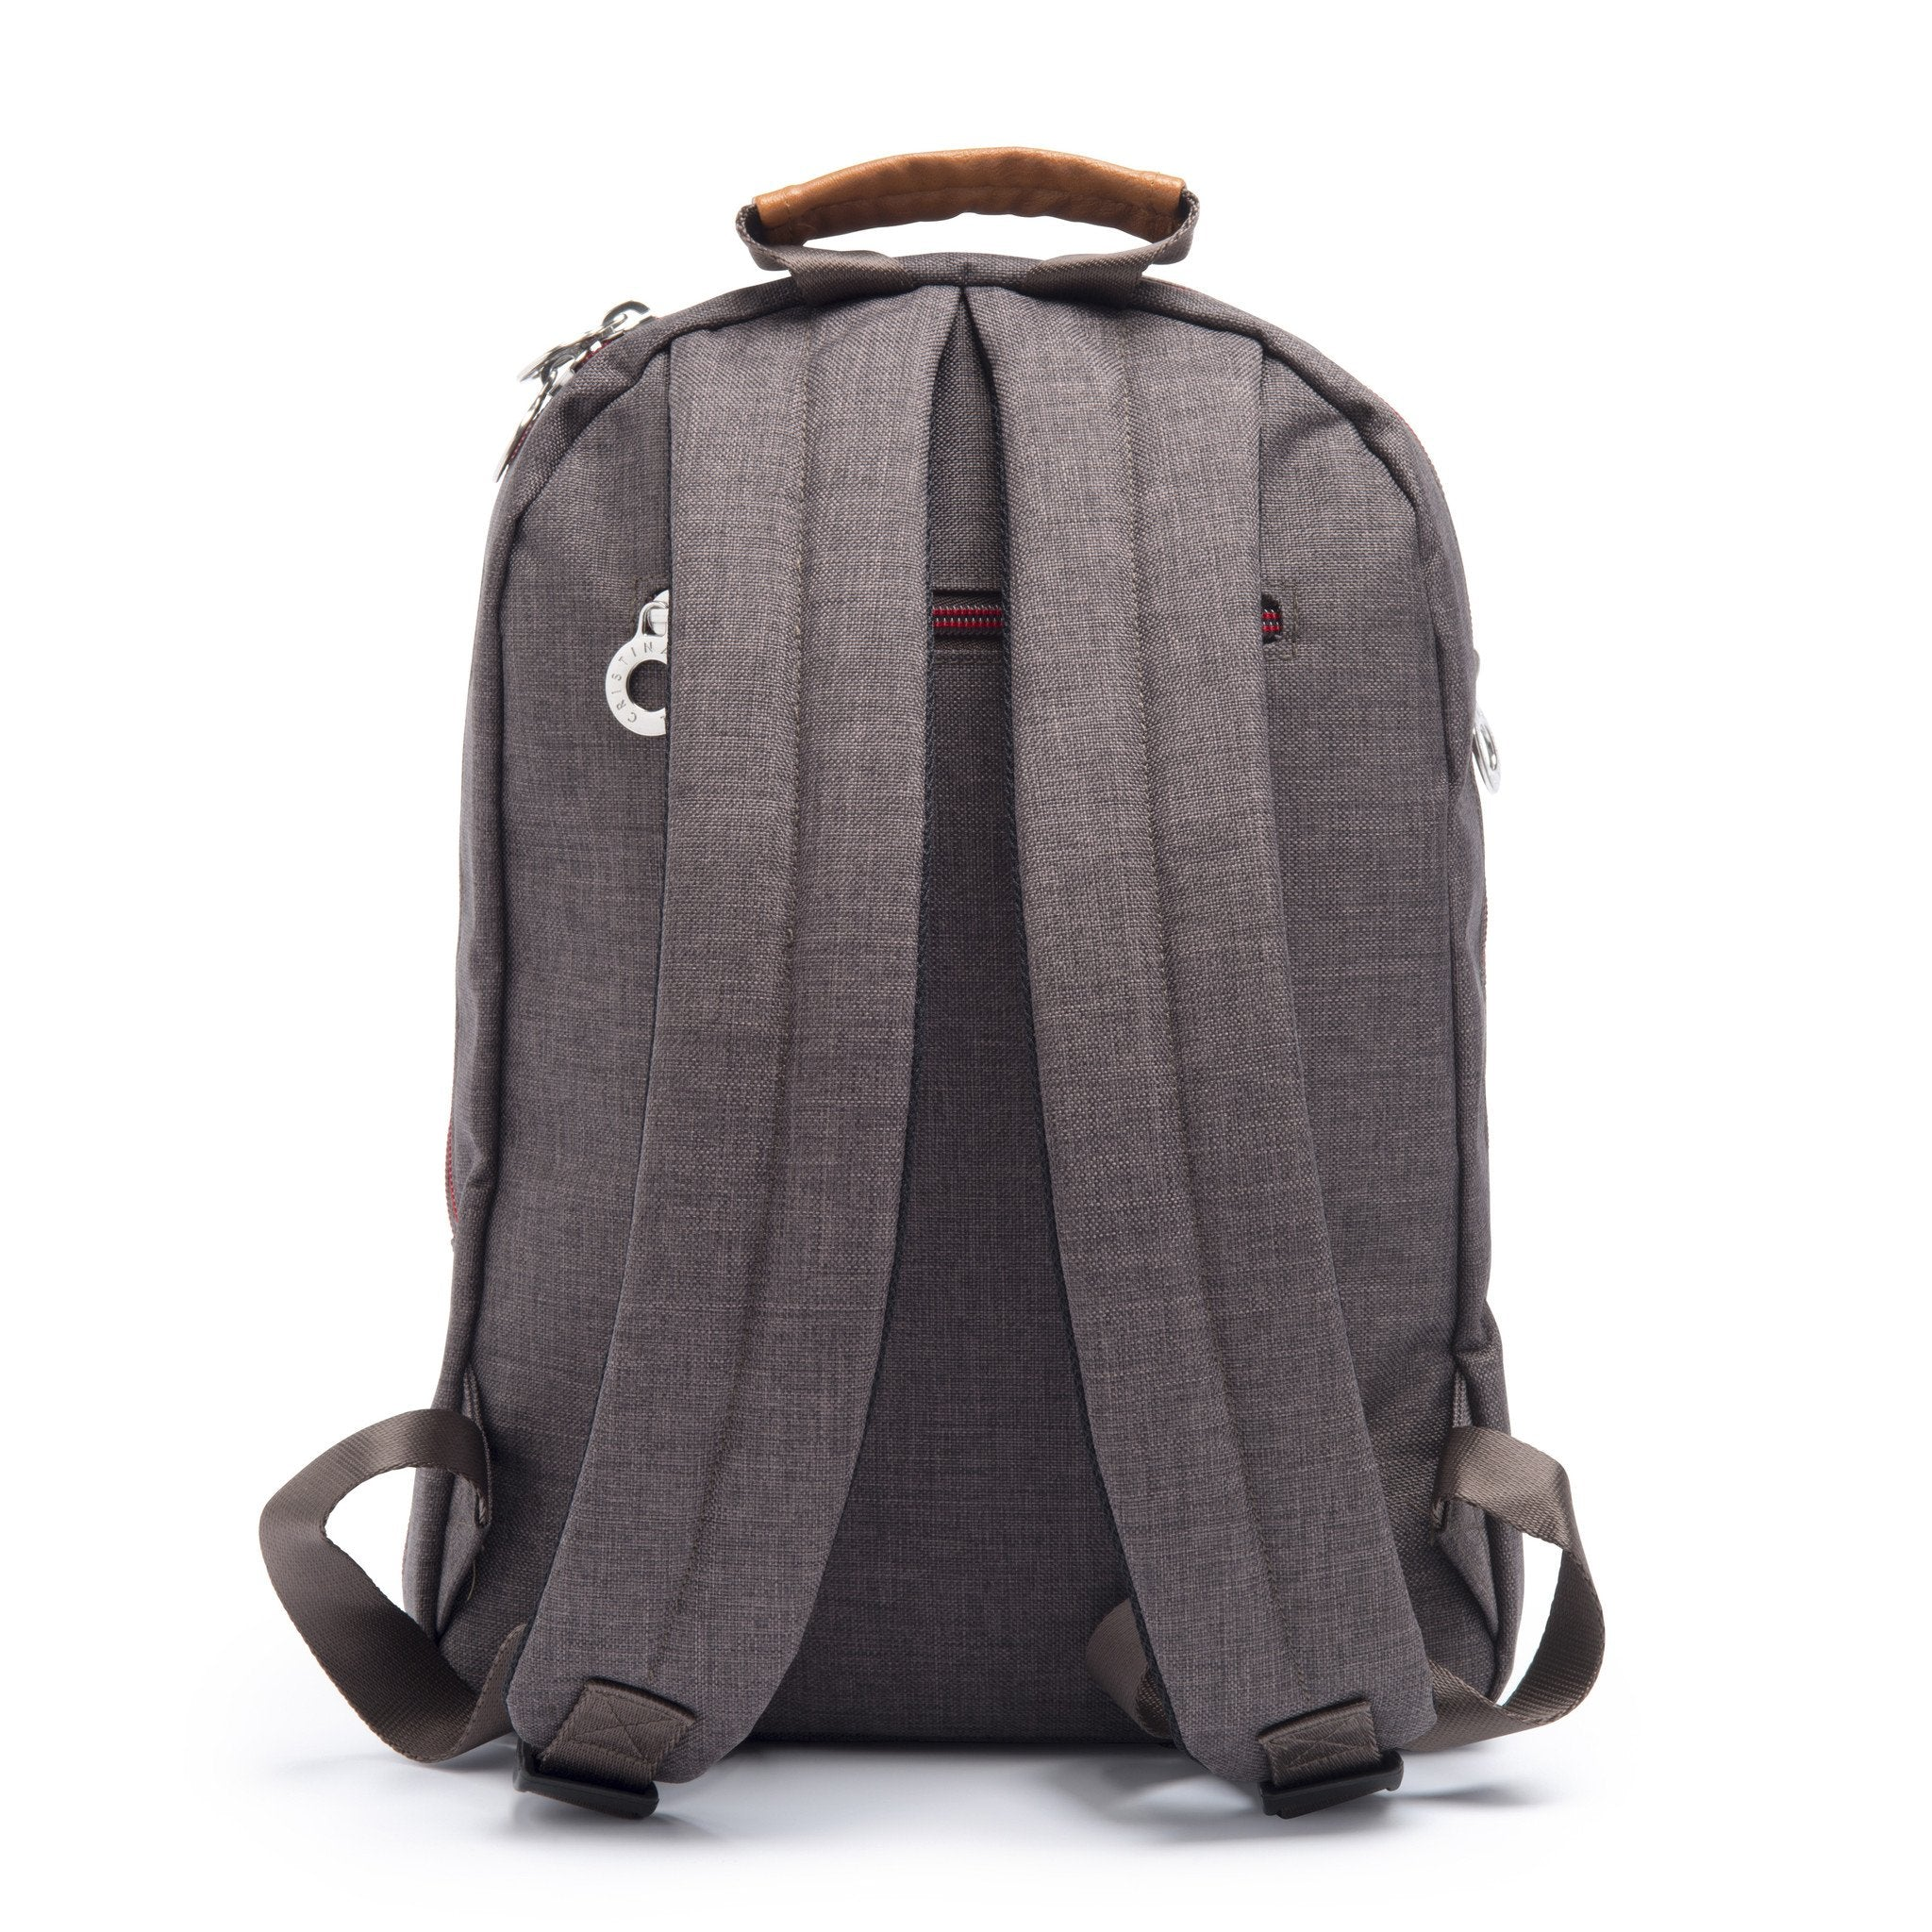 Cristina Girl Mini Backpack Ella Collection - Mocha